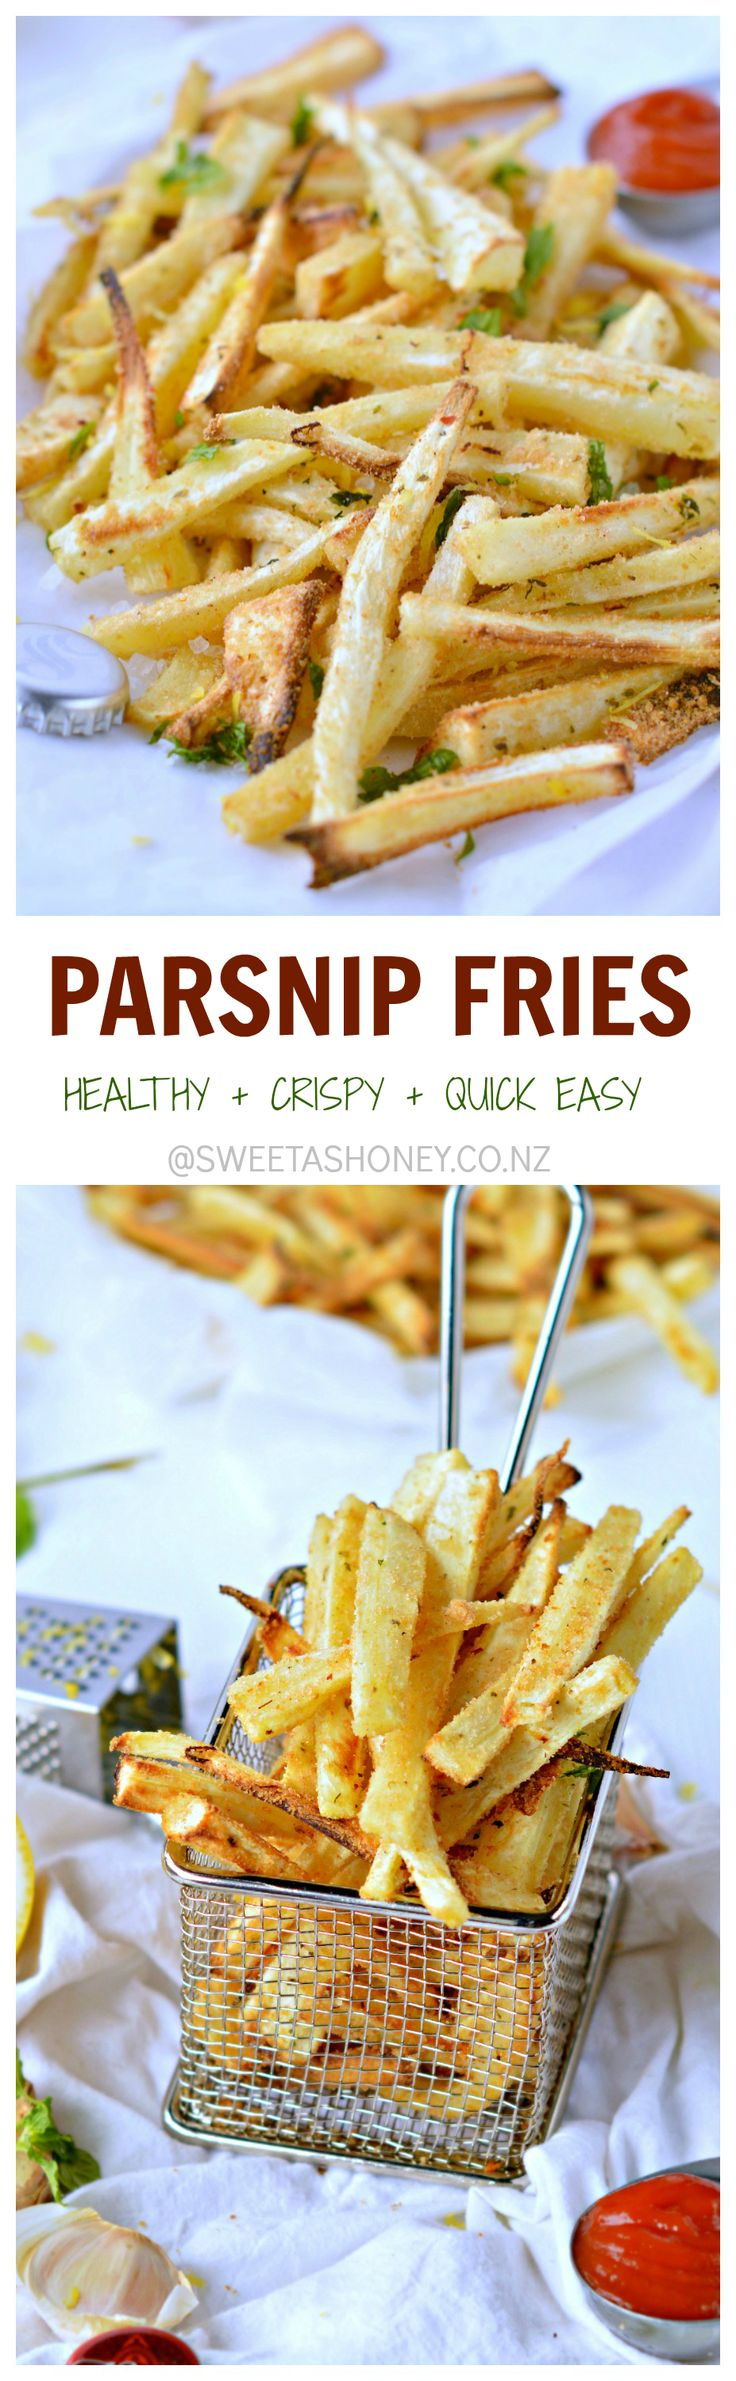 Super addictive Healthy Crispy Parsnip Fries with lemon + olive oil + mint + garlic. Only 85 kcal∕100 g, 4WW.